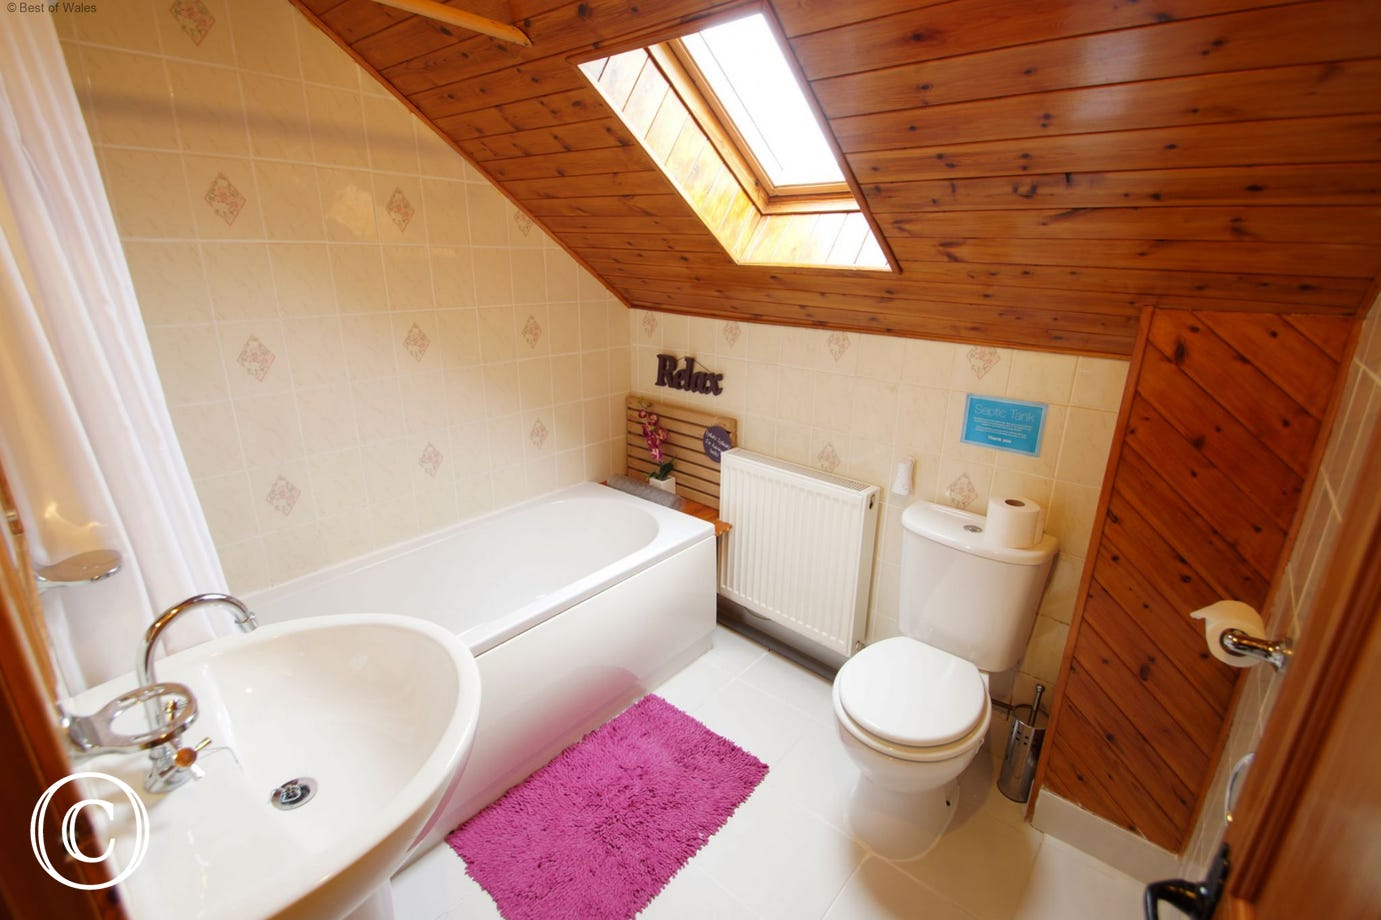 Bathroom includes bath with shower, WC and hand wash basin